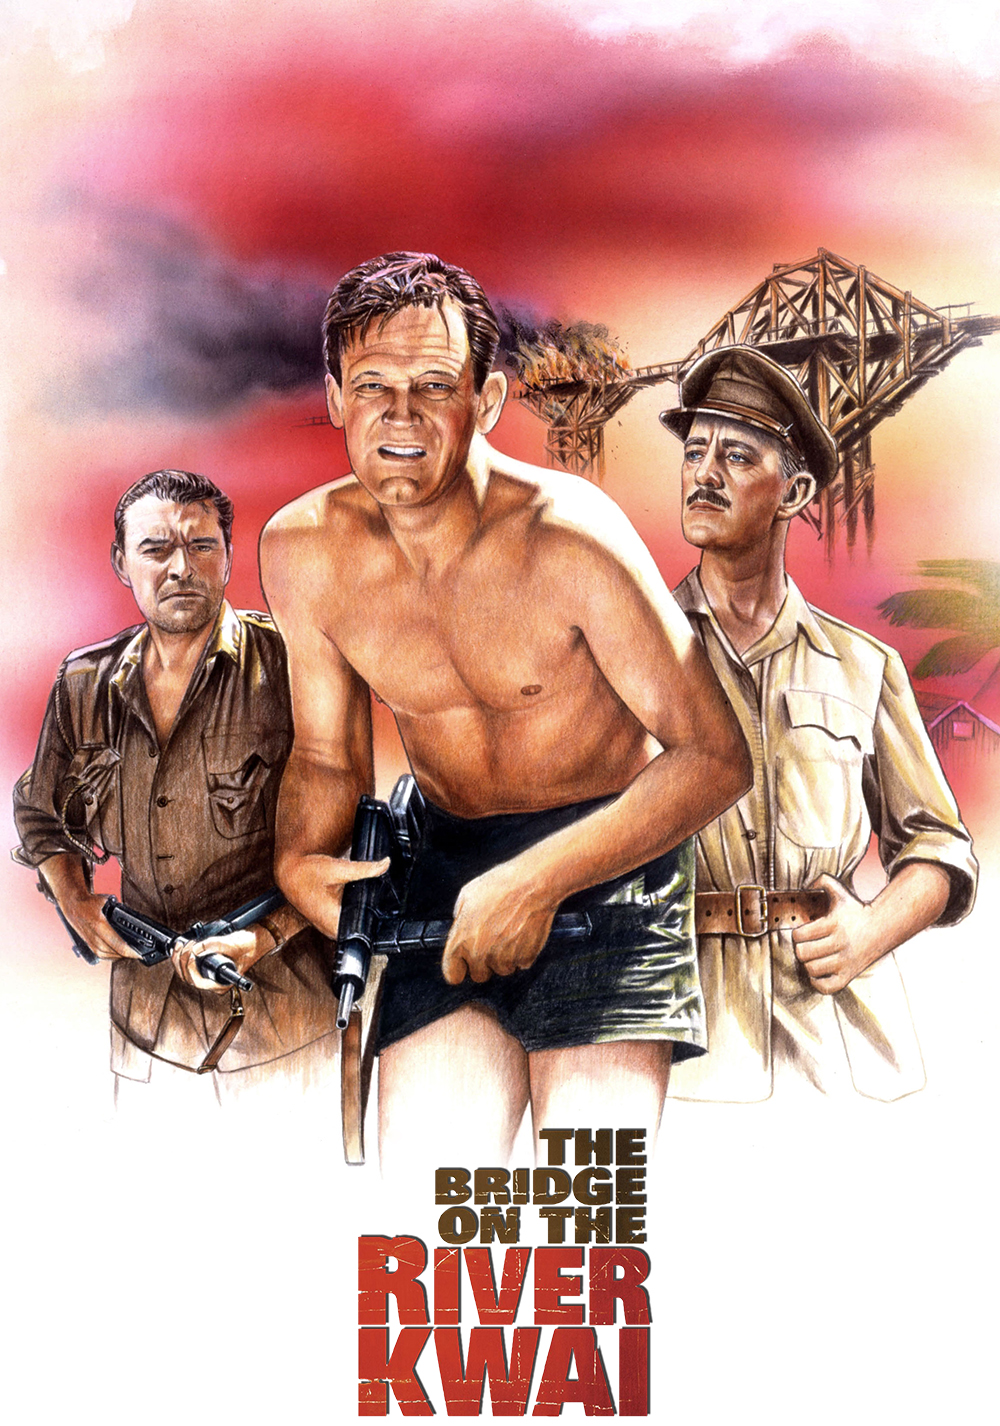 madness in the movie the bridge on the river kwai The bridge on the river kwai is mainly the story of a battle of wills between two men one, colonel saito (sessue hayakawa) is charge of a japanese pow camp and has orders to use the prisoners in his camp to complete a bridge over the kwai at any cost.